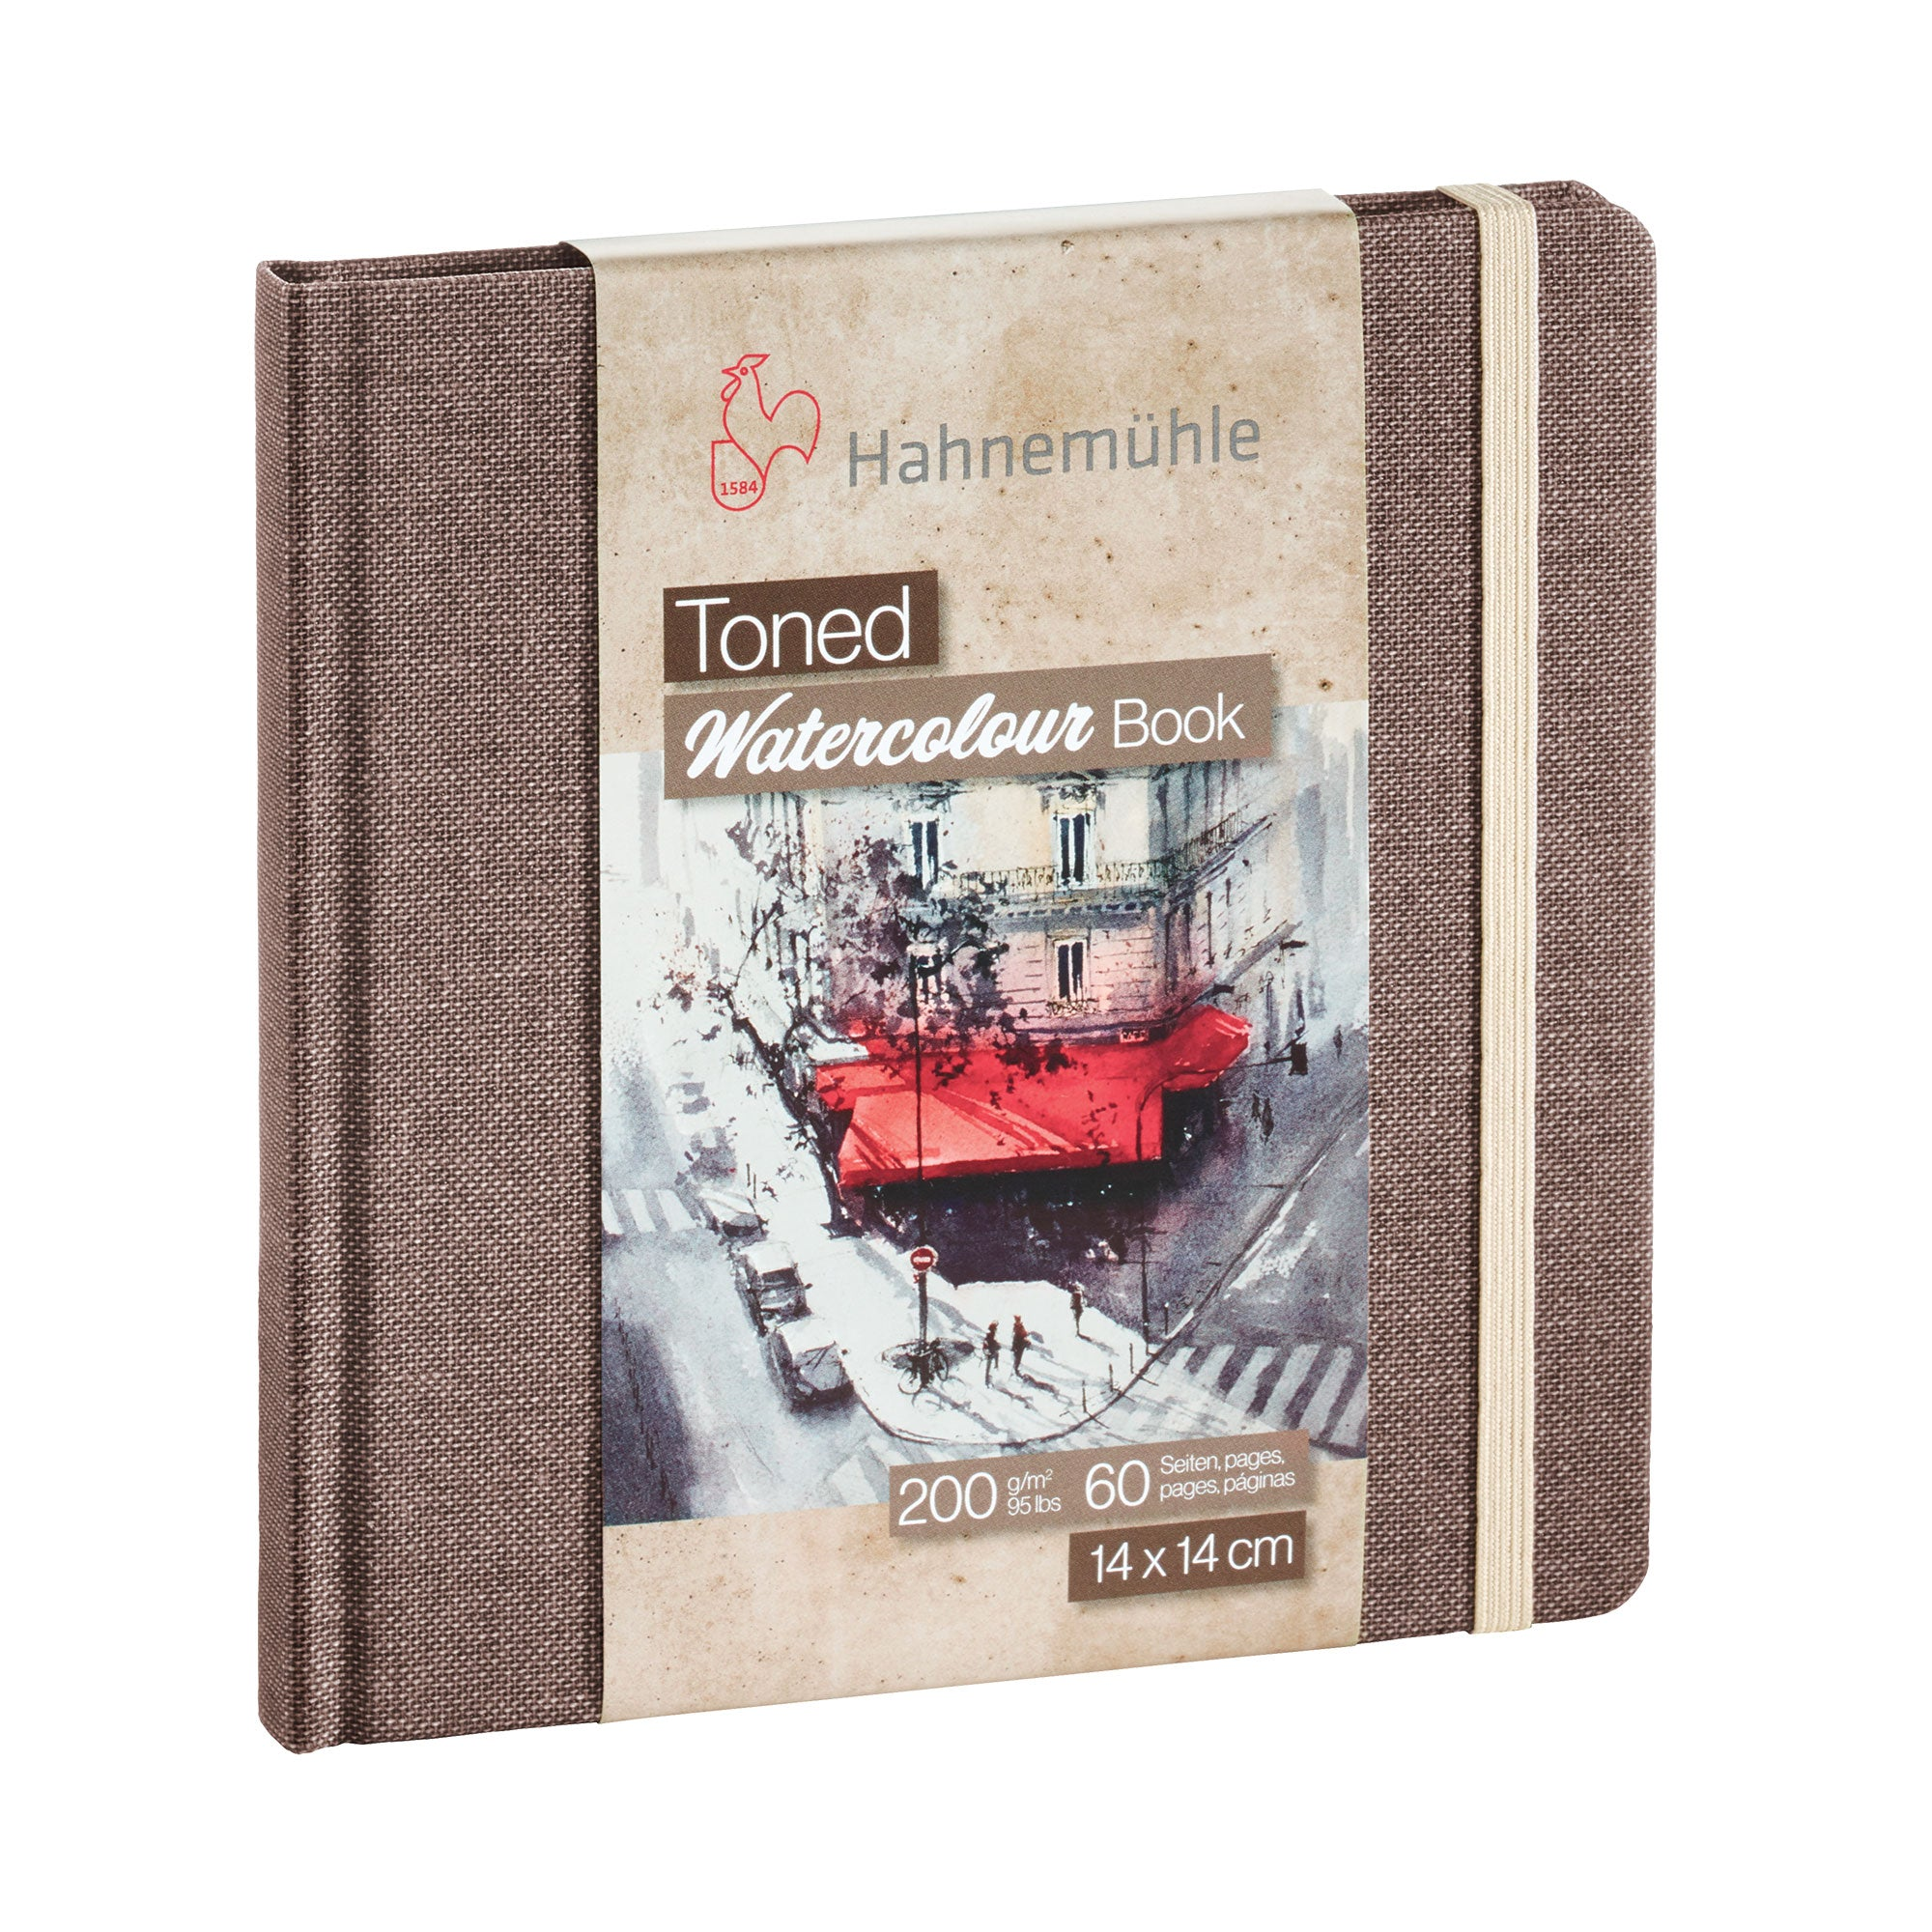 Hahnemühle 'Toned' Watercolour Books - Beige